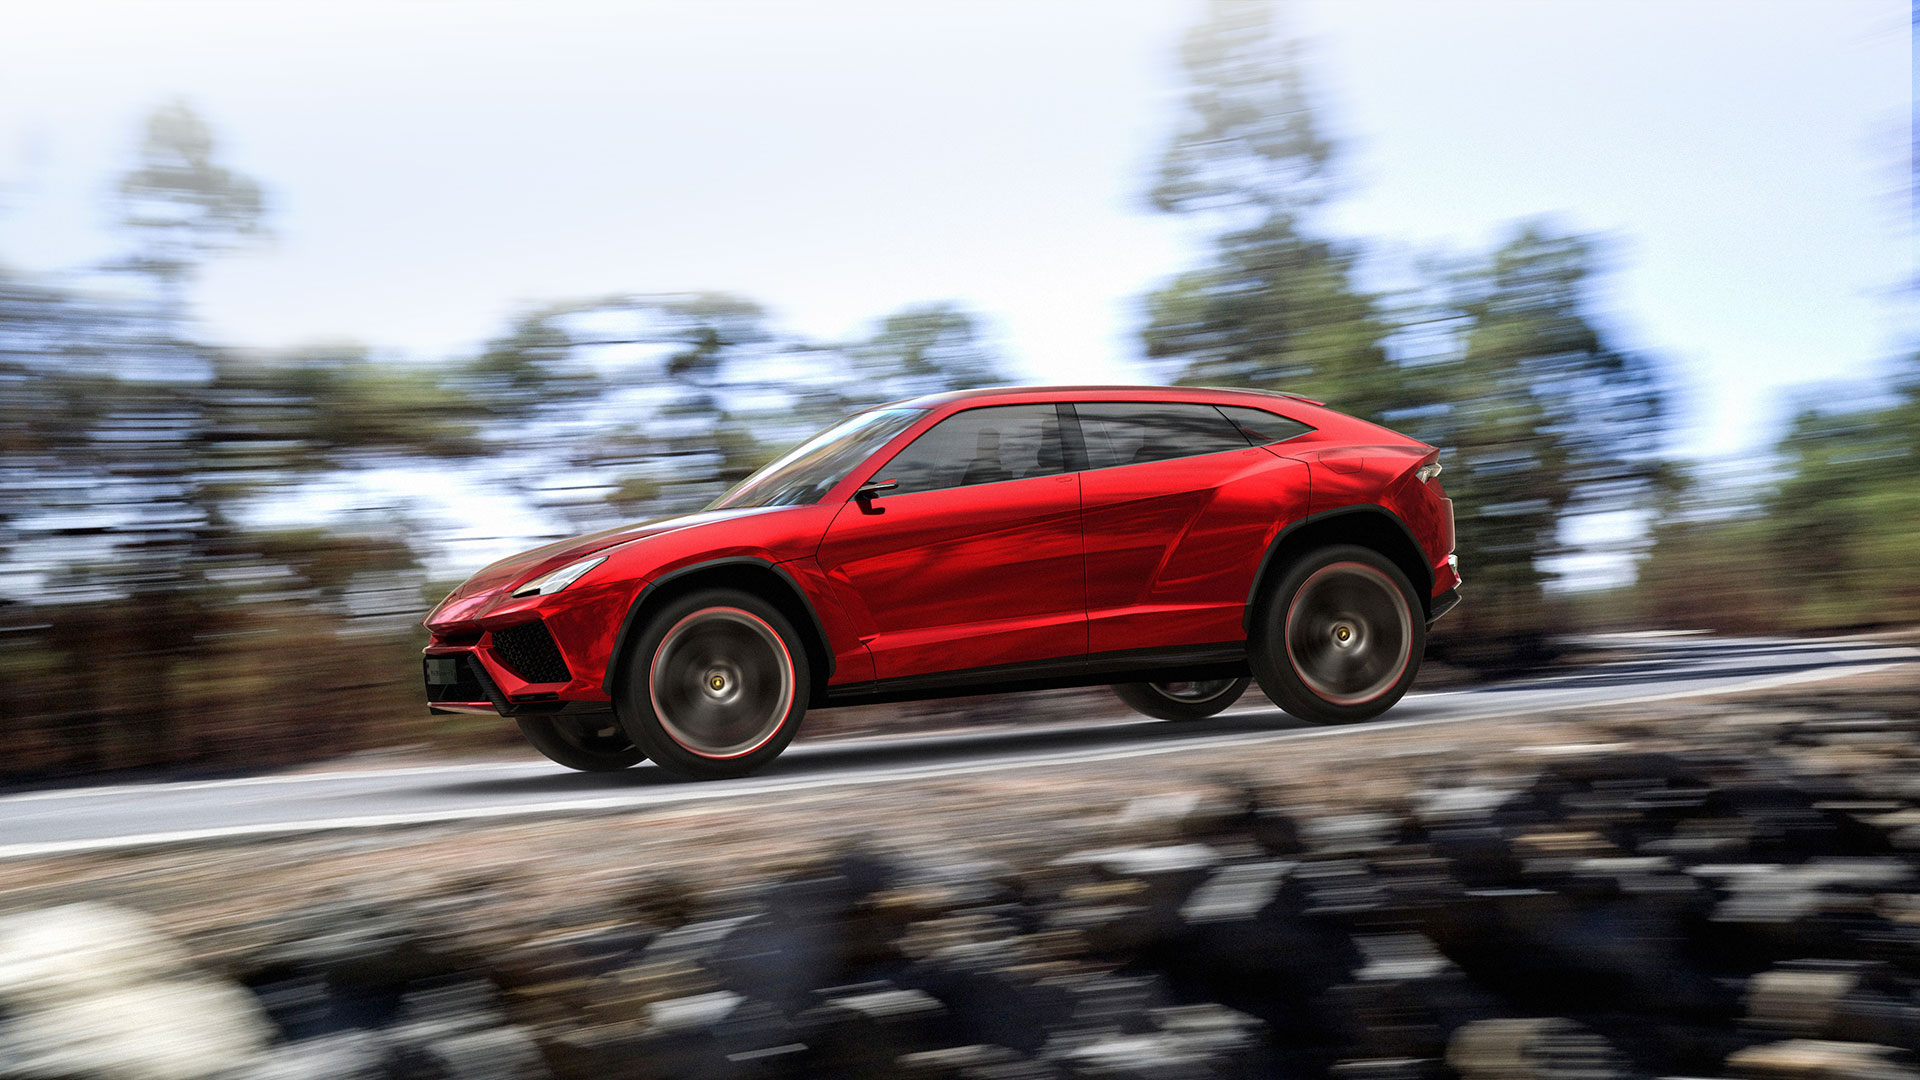 Lamborghini Urus Super Suv Shelby White The Blog Of